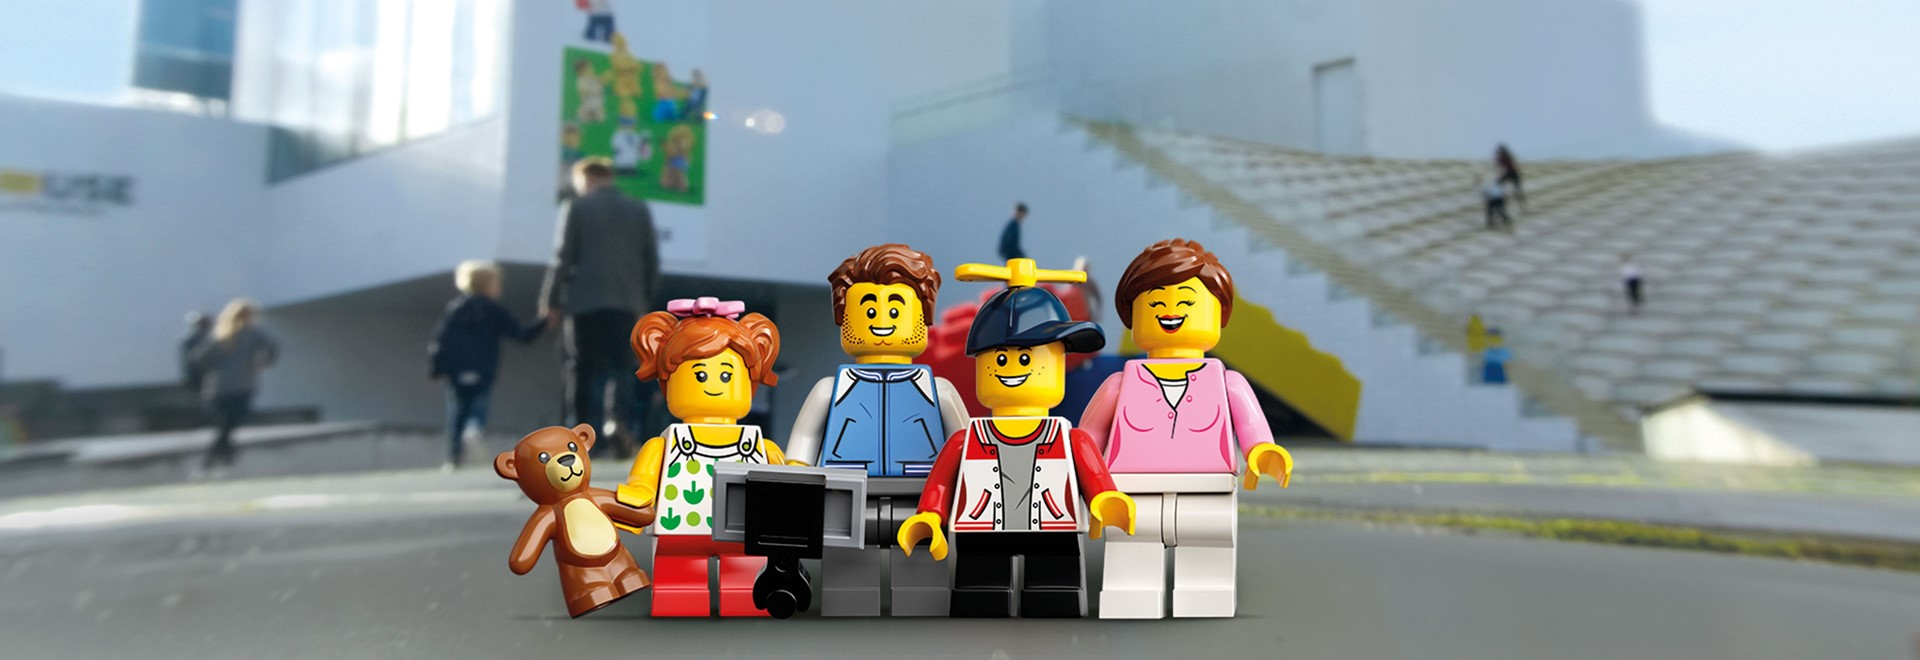 Buy an Annual Pass to LEGO House and come as often as you like